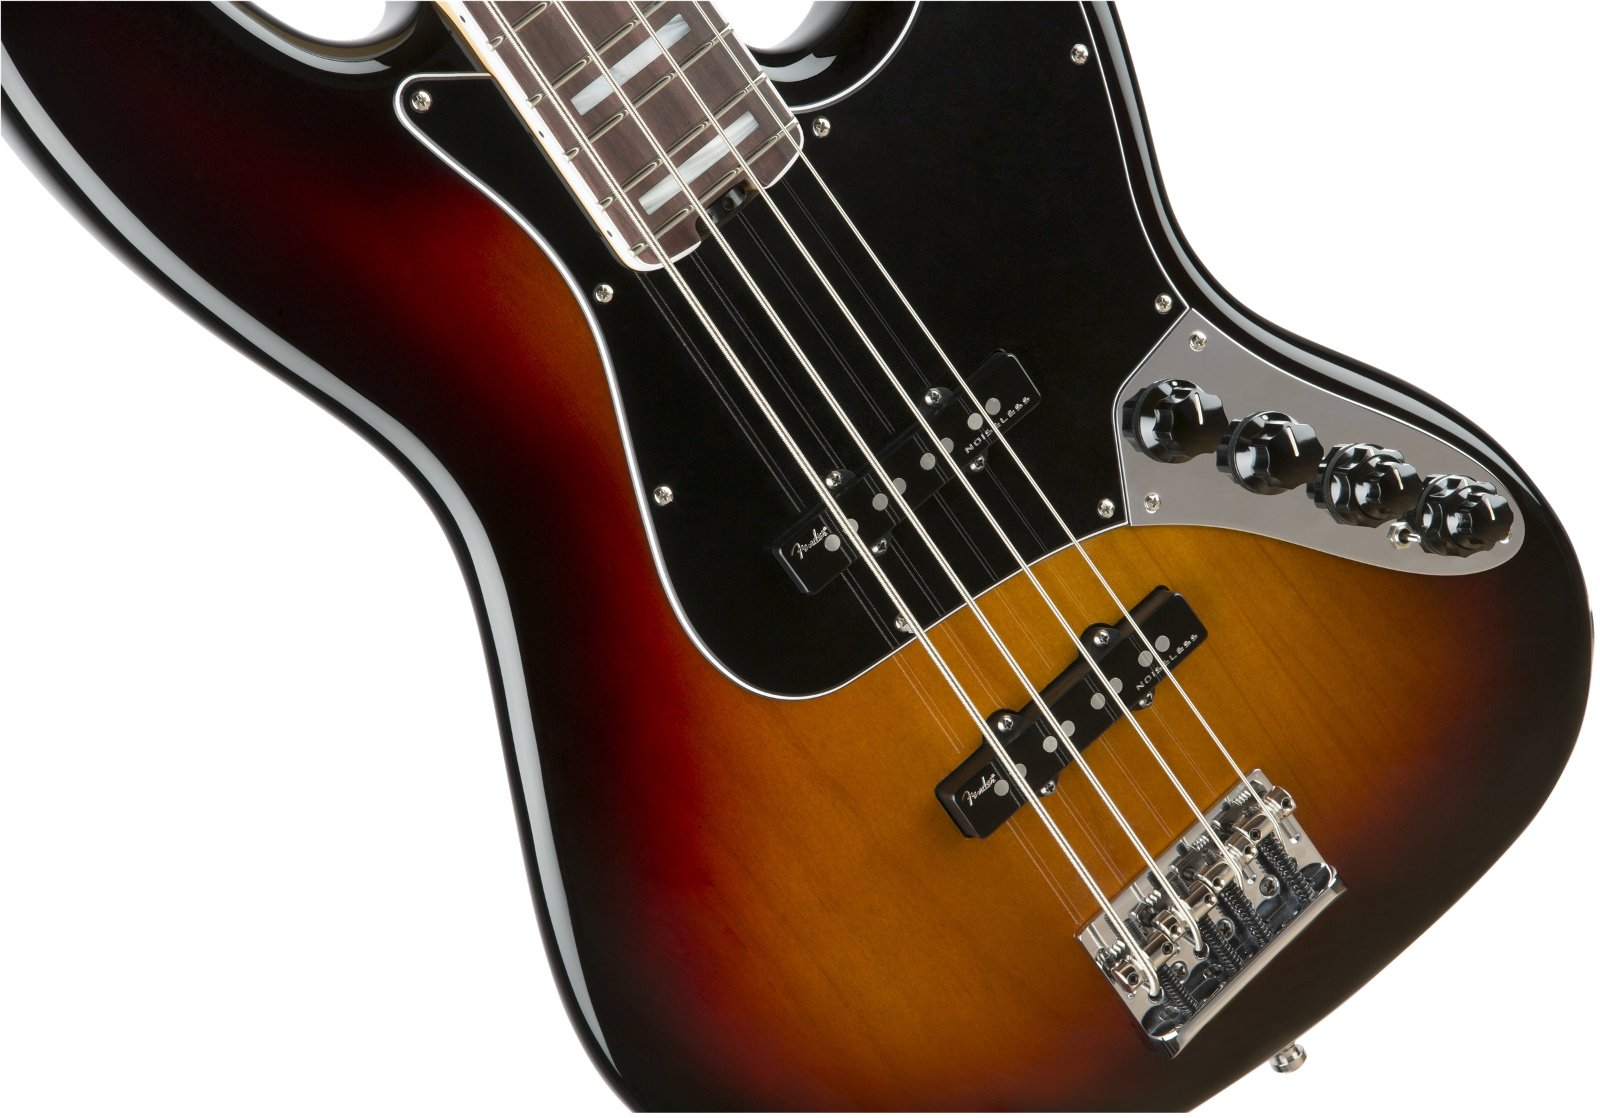 Electric Bass with Noiseless Pickups, Rosewood Fingerboard